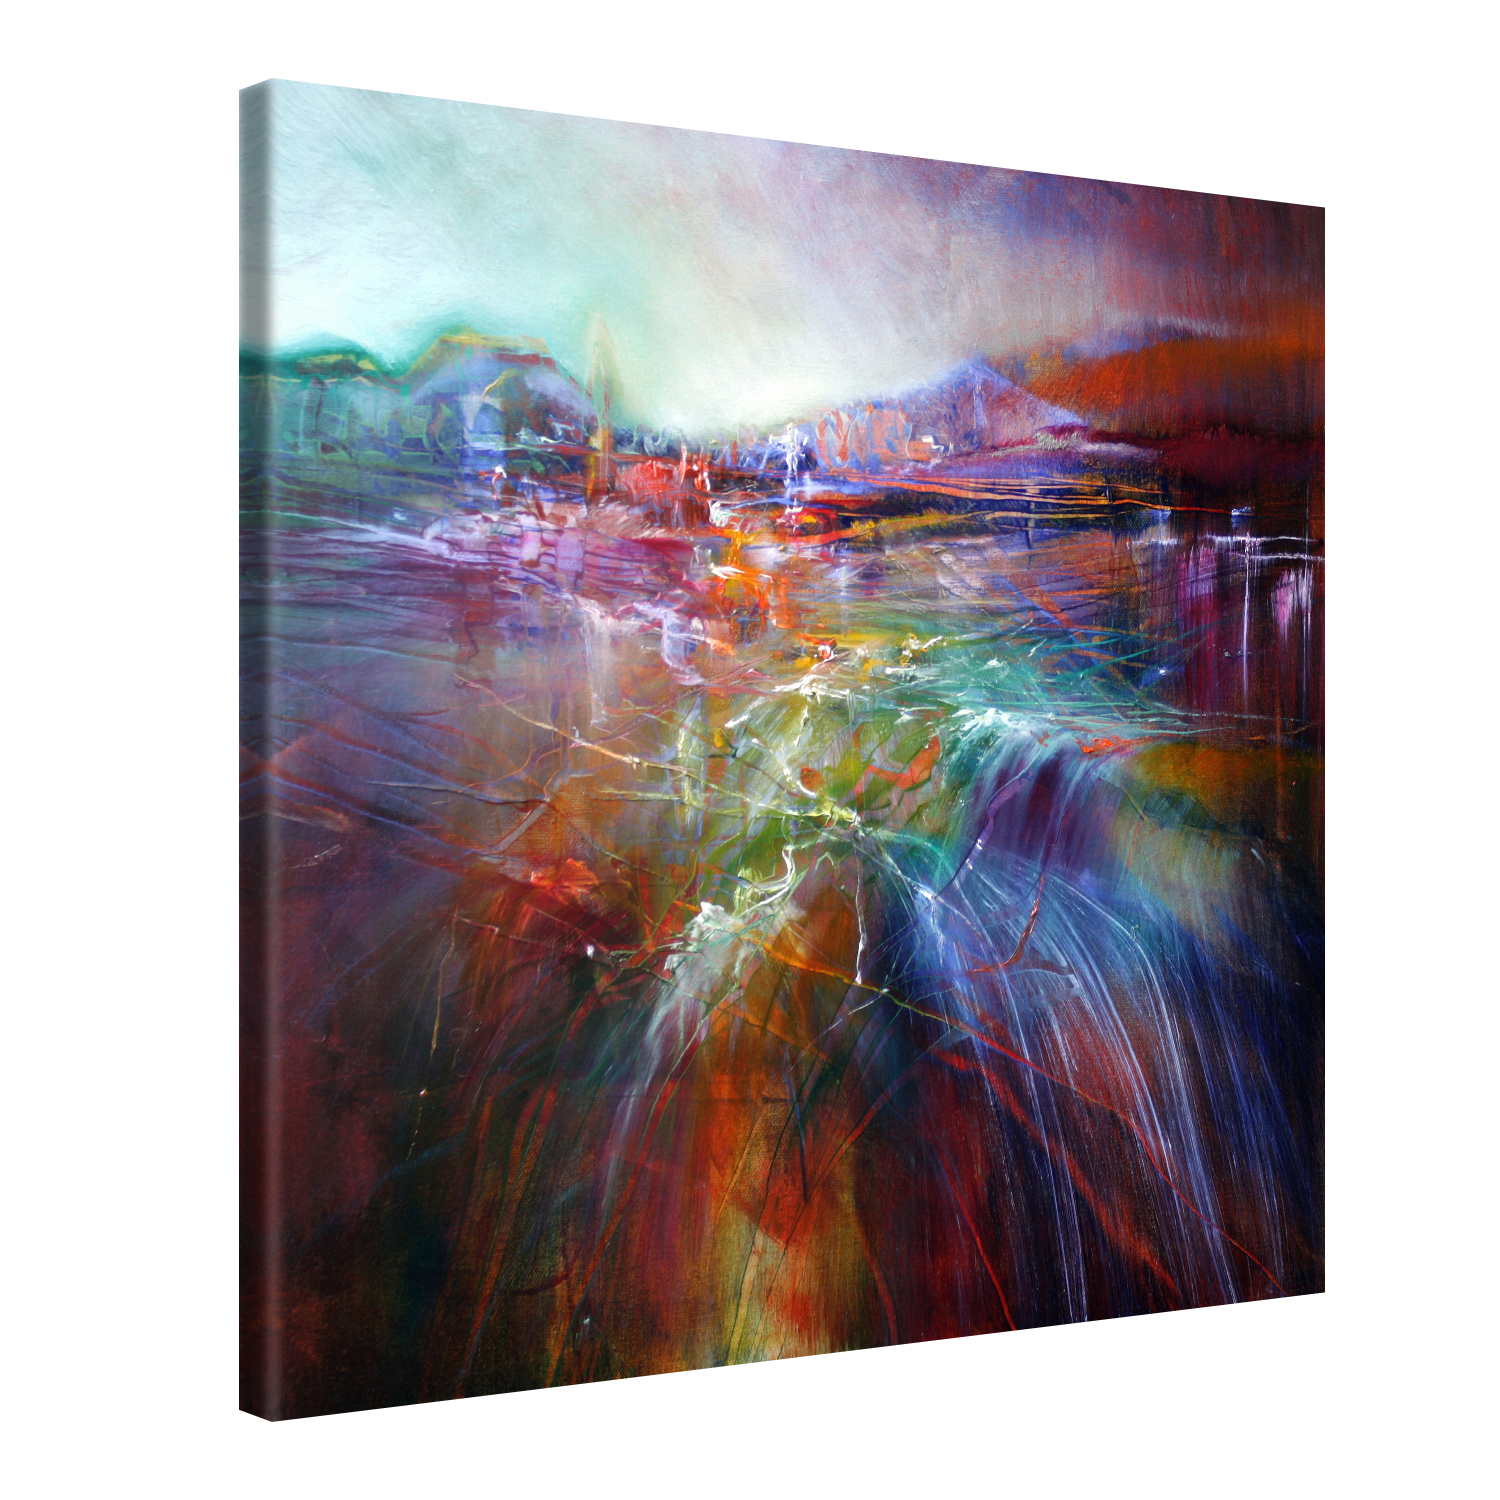 Evening Glory - 80x80 cm - Annette Schmucker #e13176